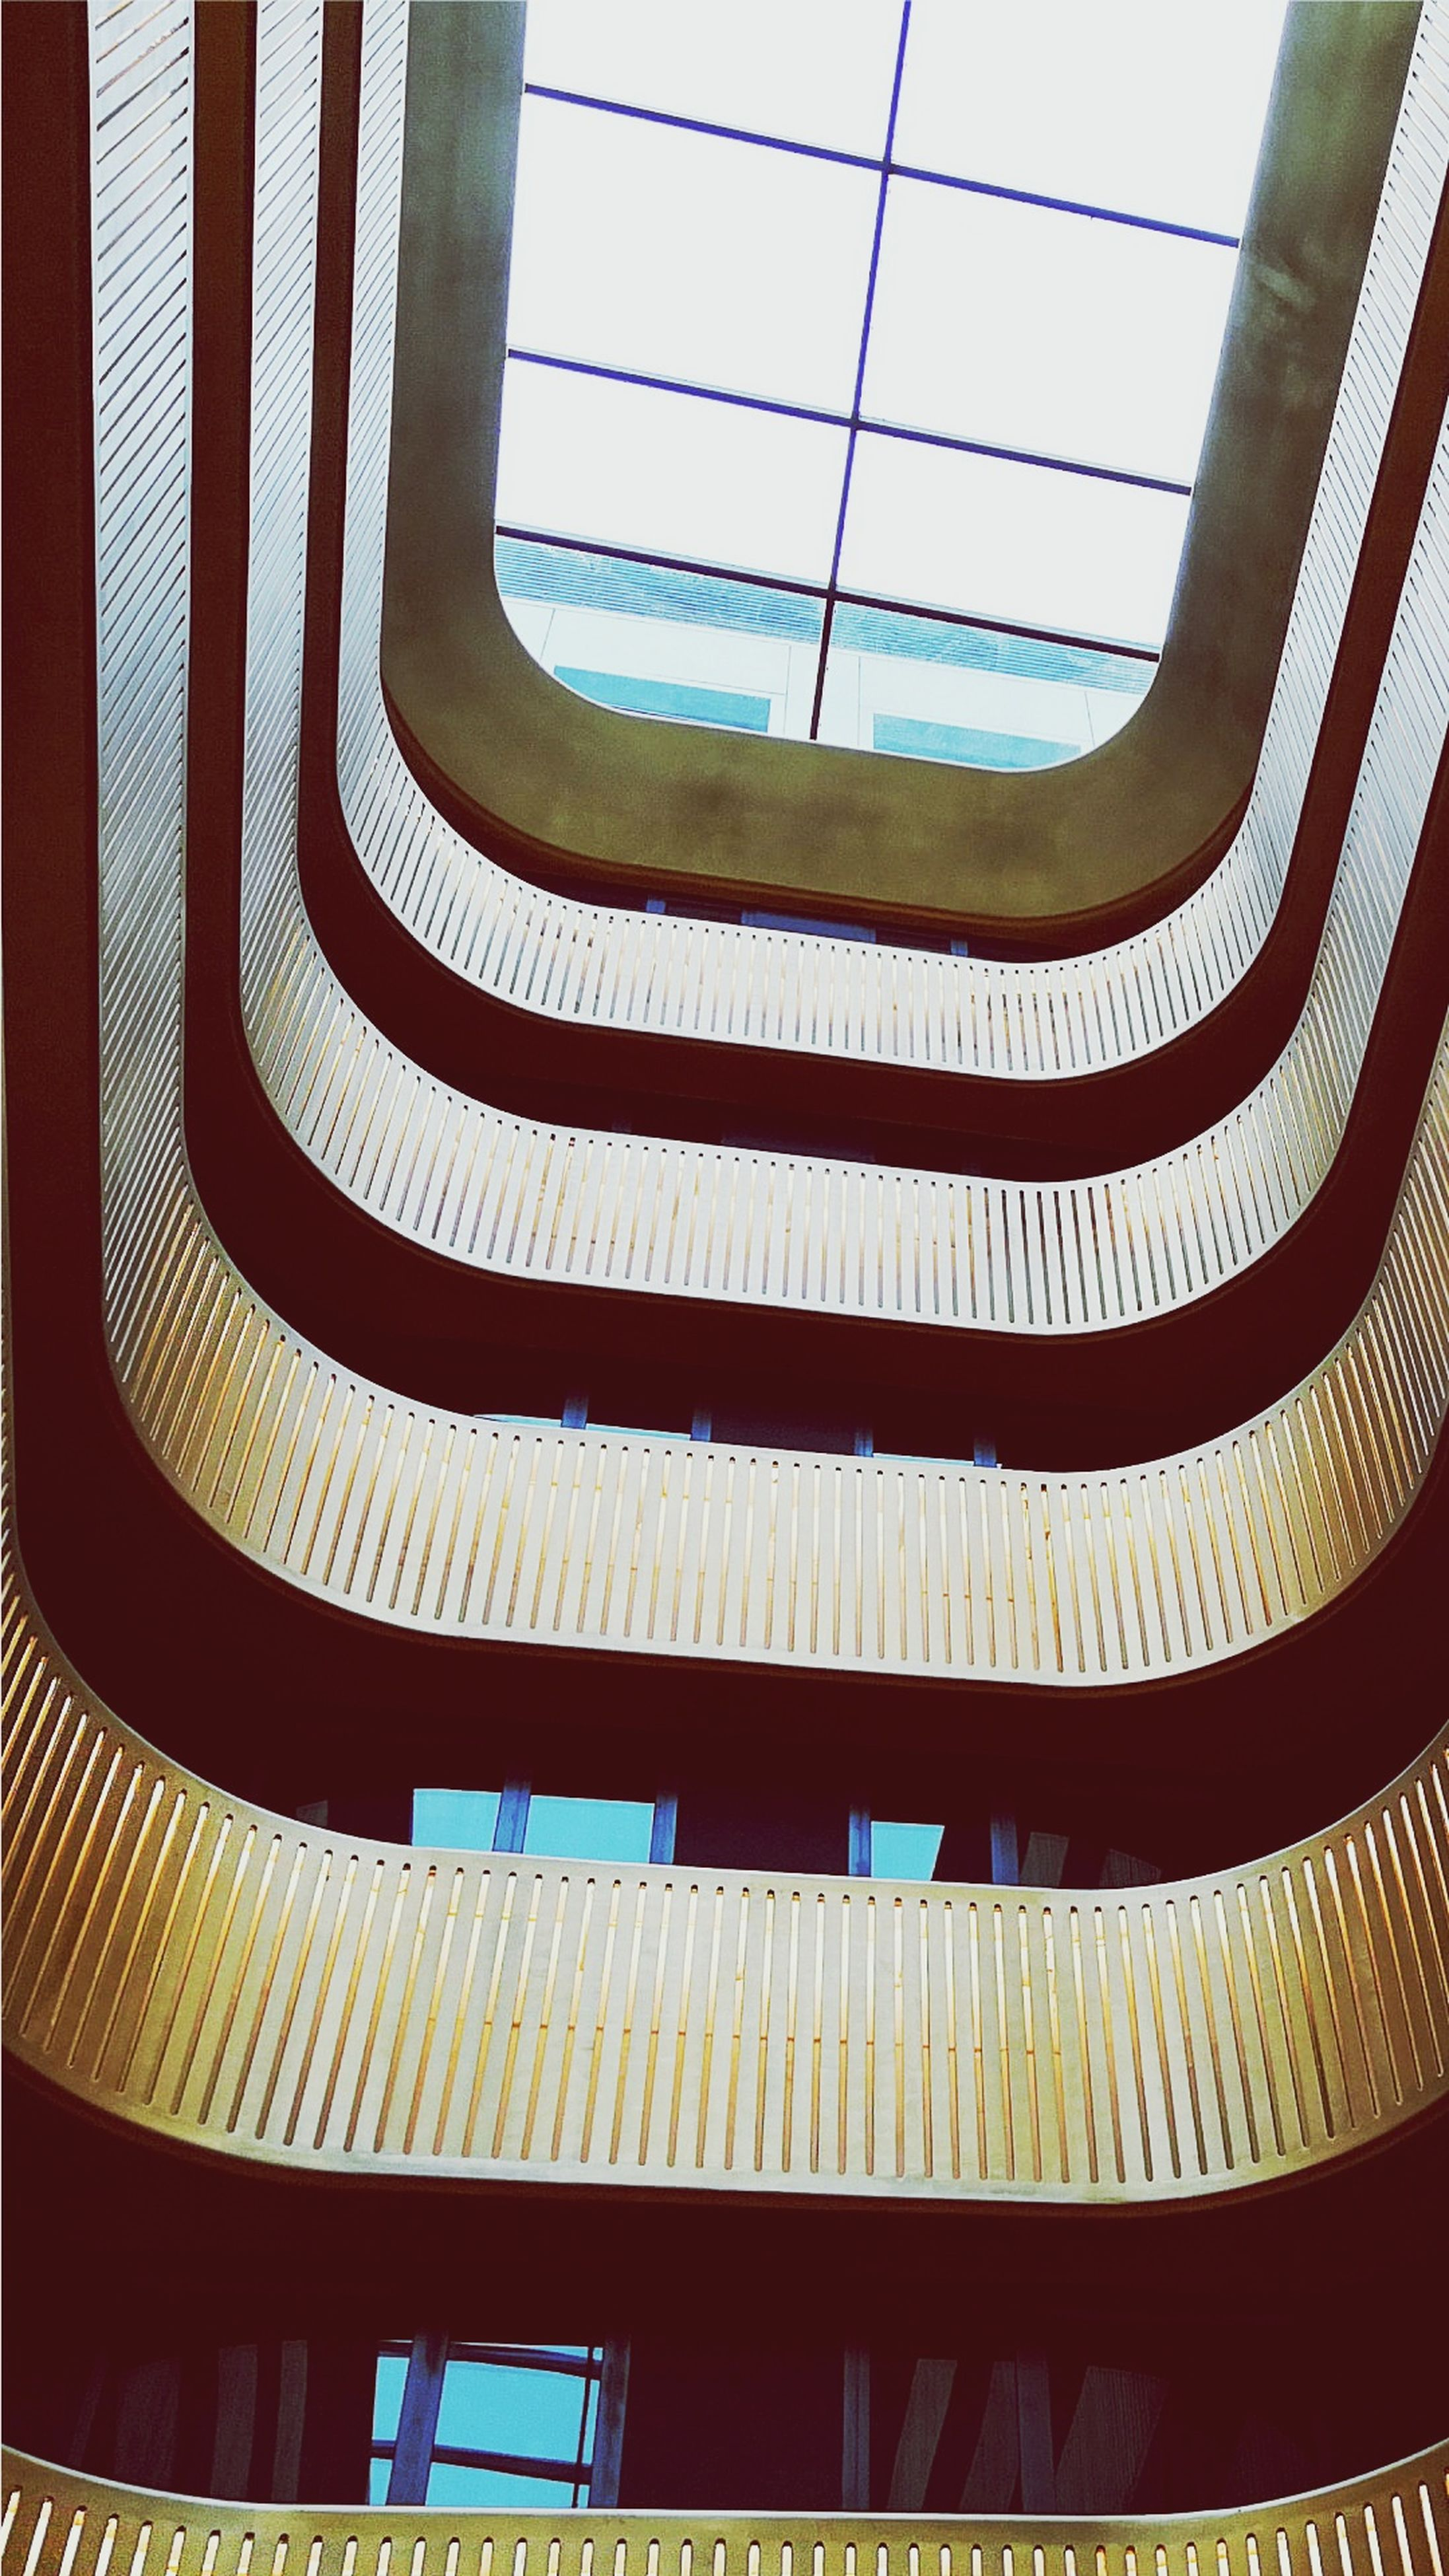 pattern, window, low angle view, indoors, no people, day, built structure, architecture, backgrounds, sky